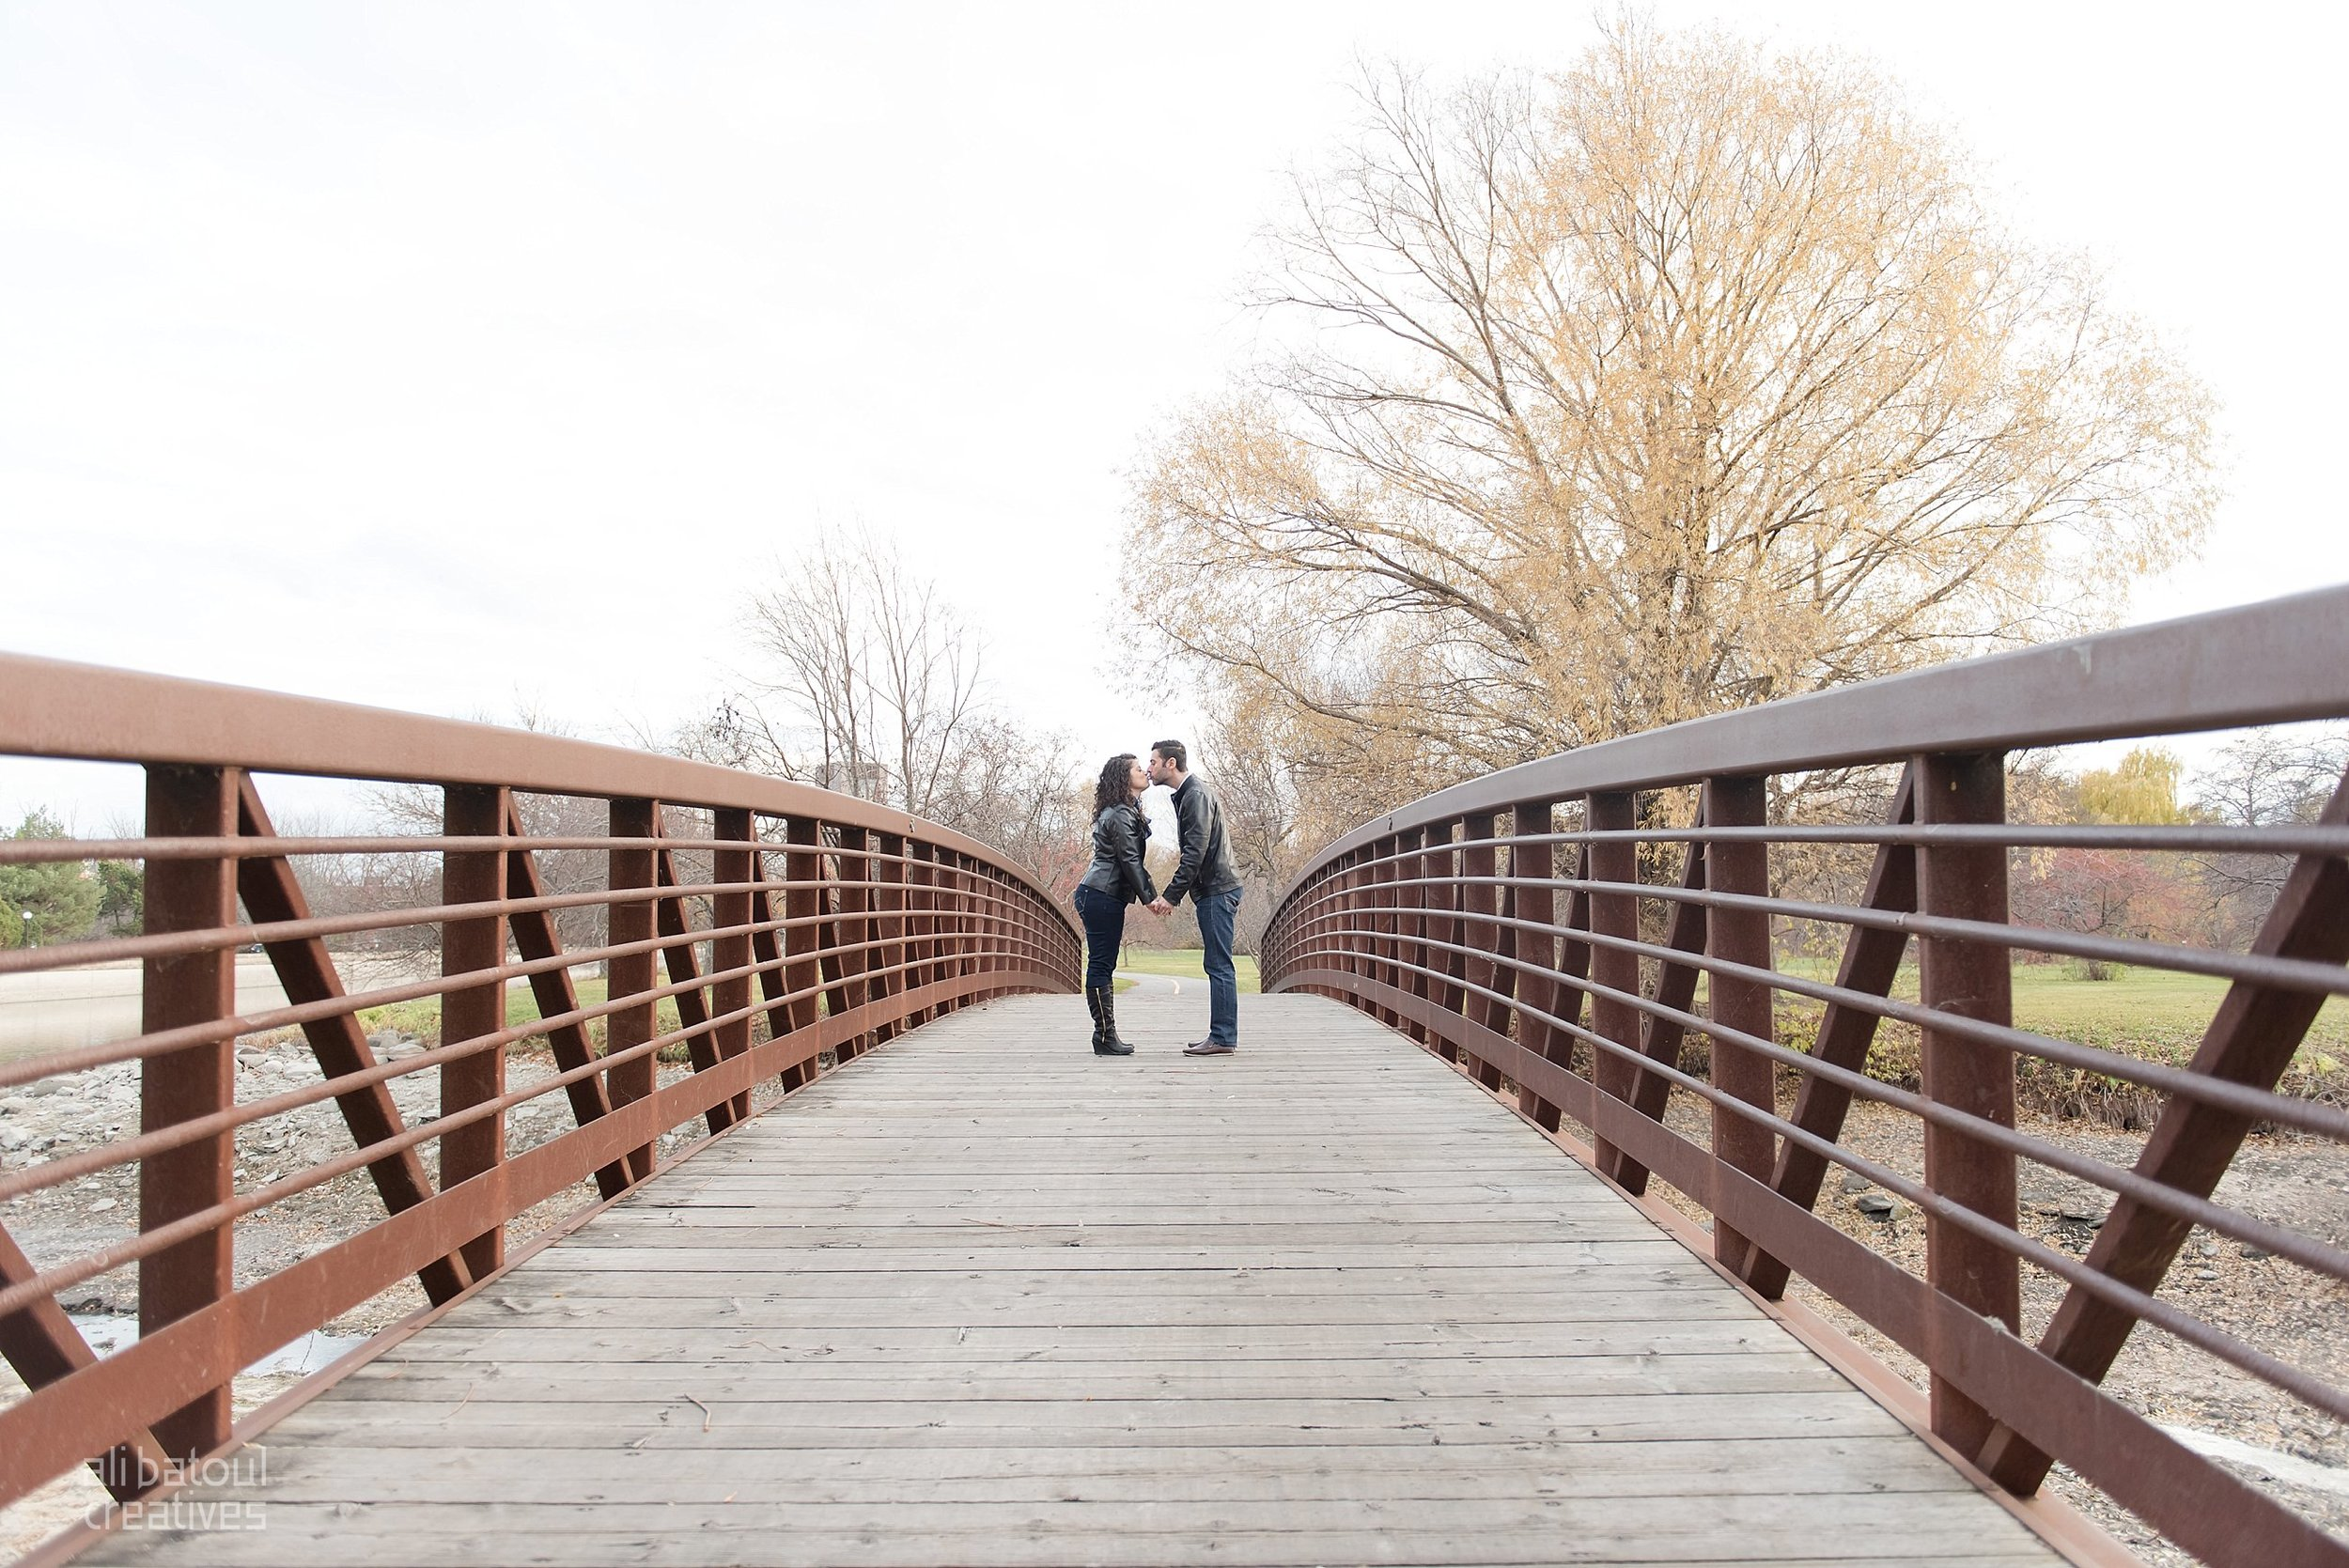 Isabelle + Arman Couples Shoot - Ali Batoul Creatives - Blog-39_Stomped.jpg